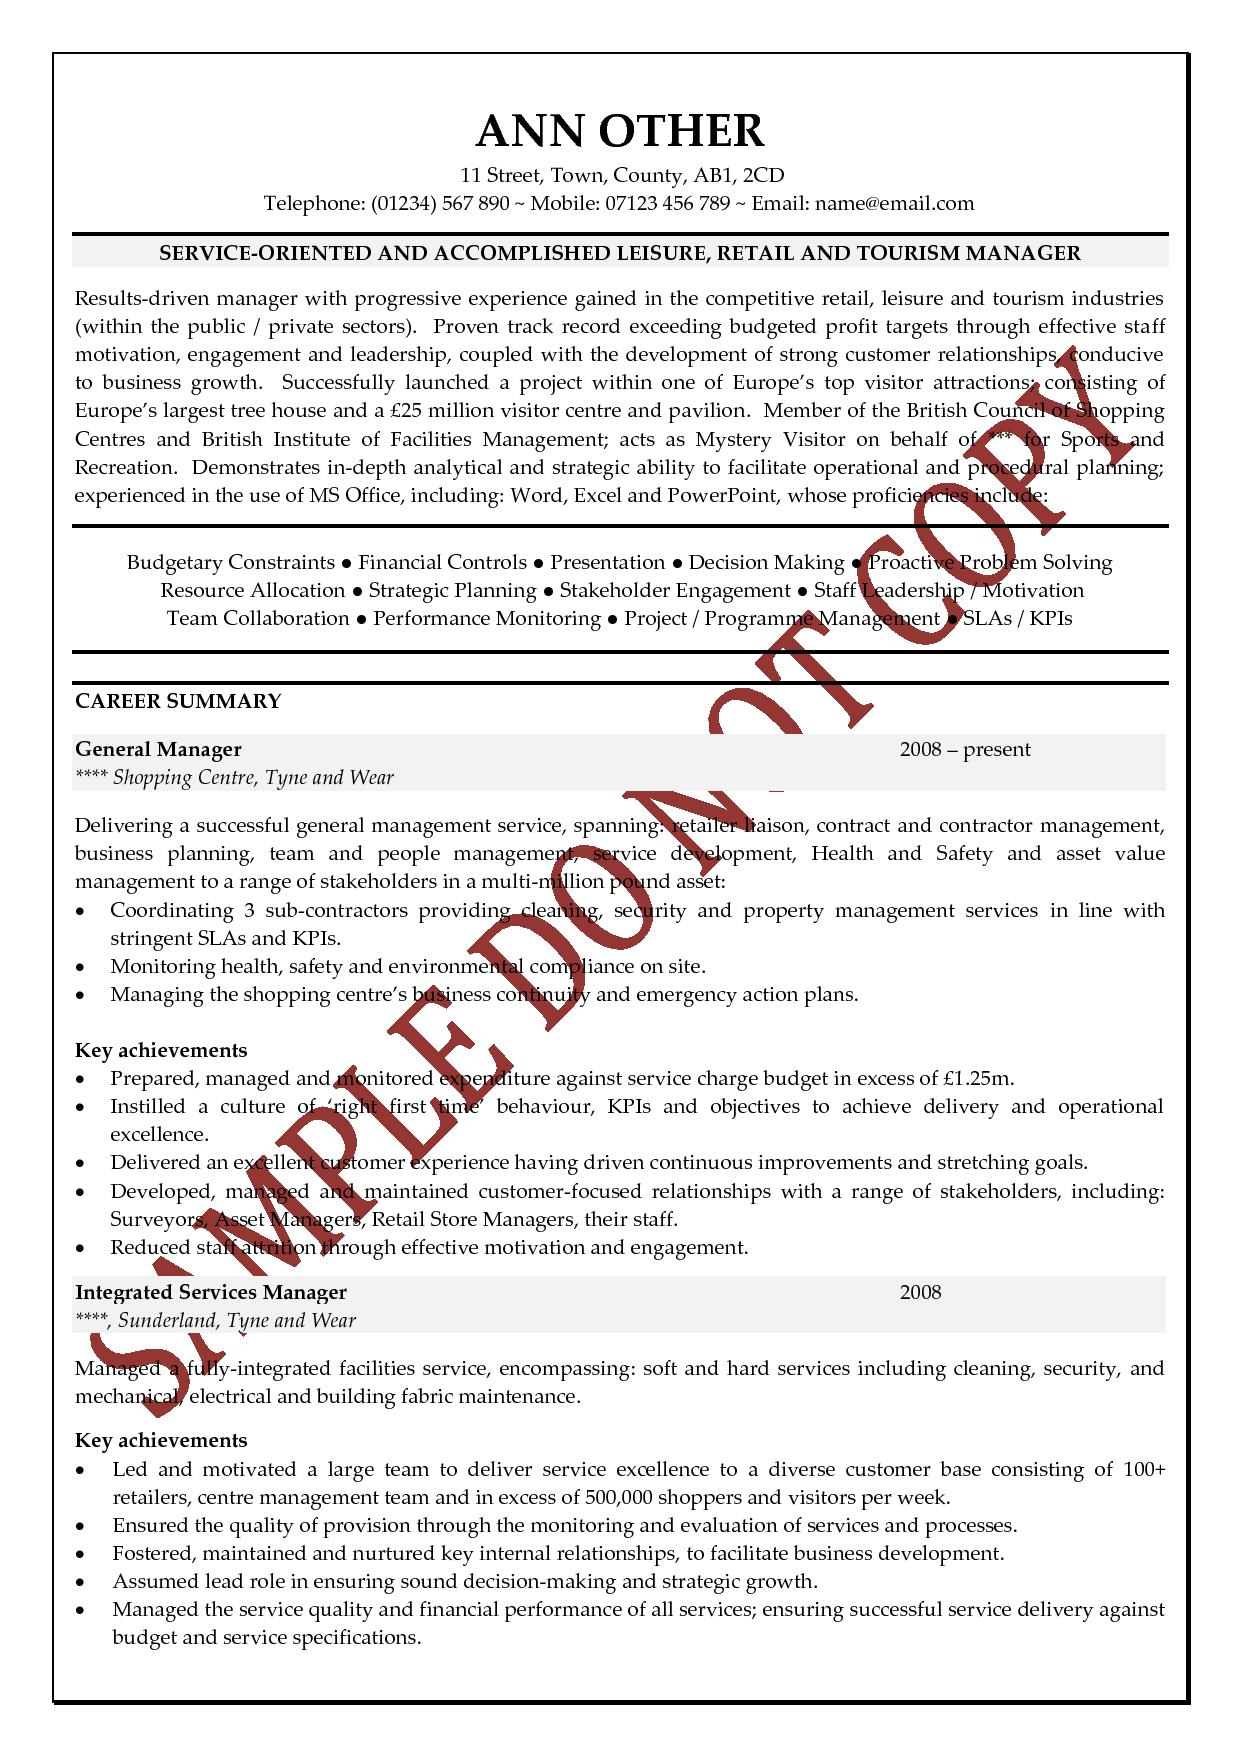 executive cv examples the cv store - Senior Executive Resume Examples